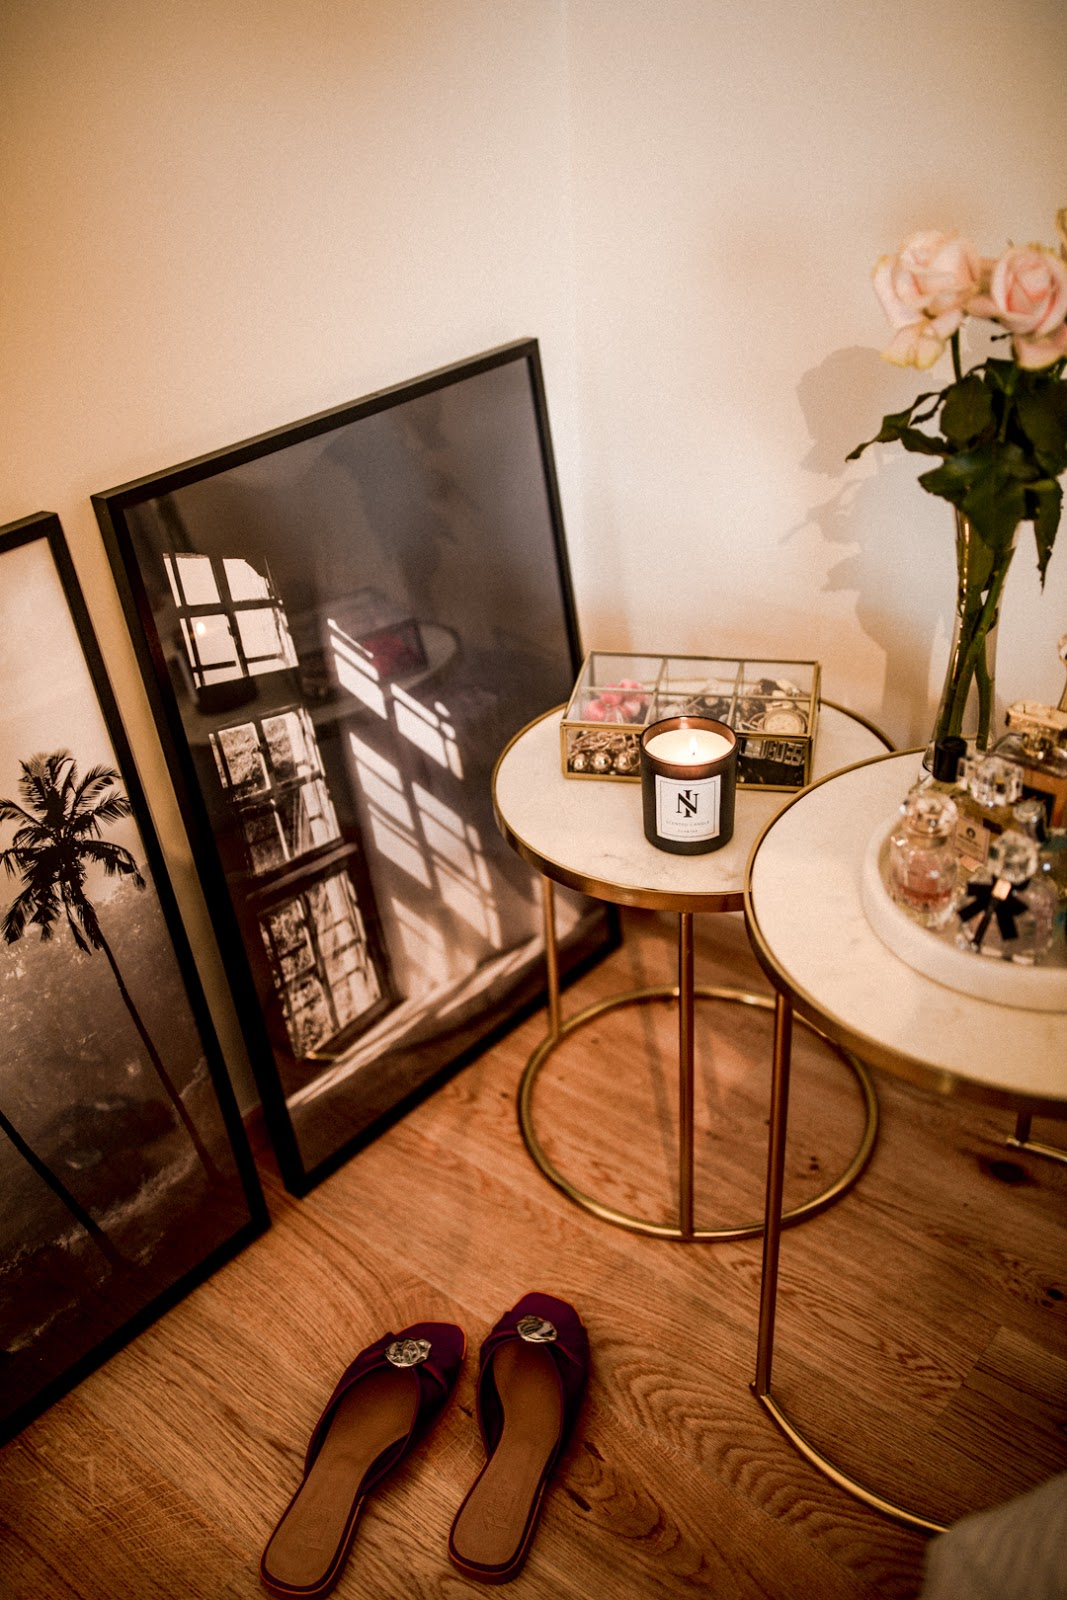 bedside tables flowers perfumes jewelry